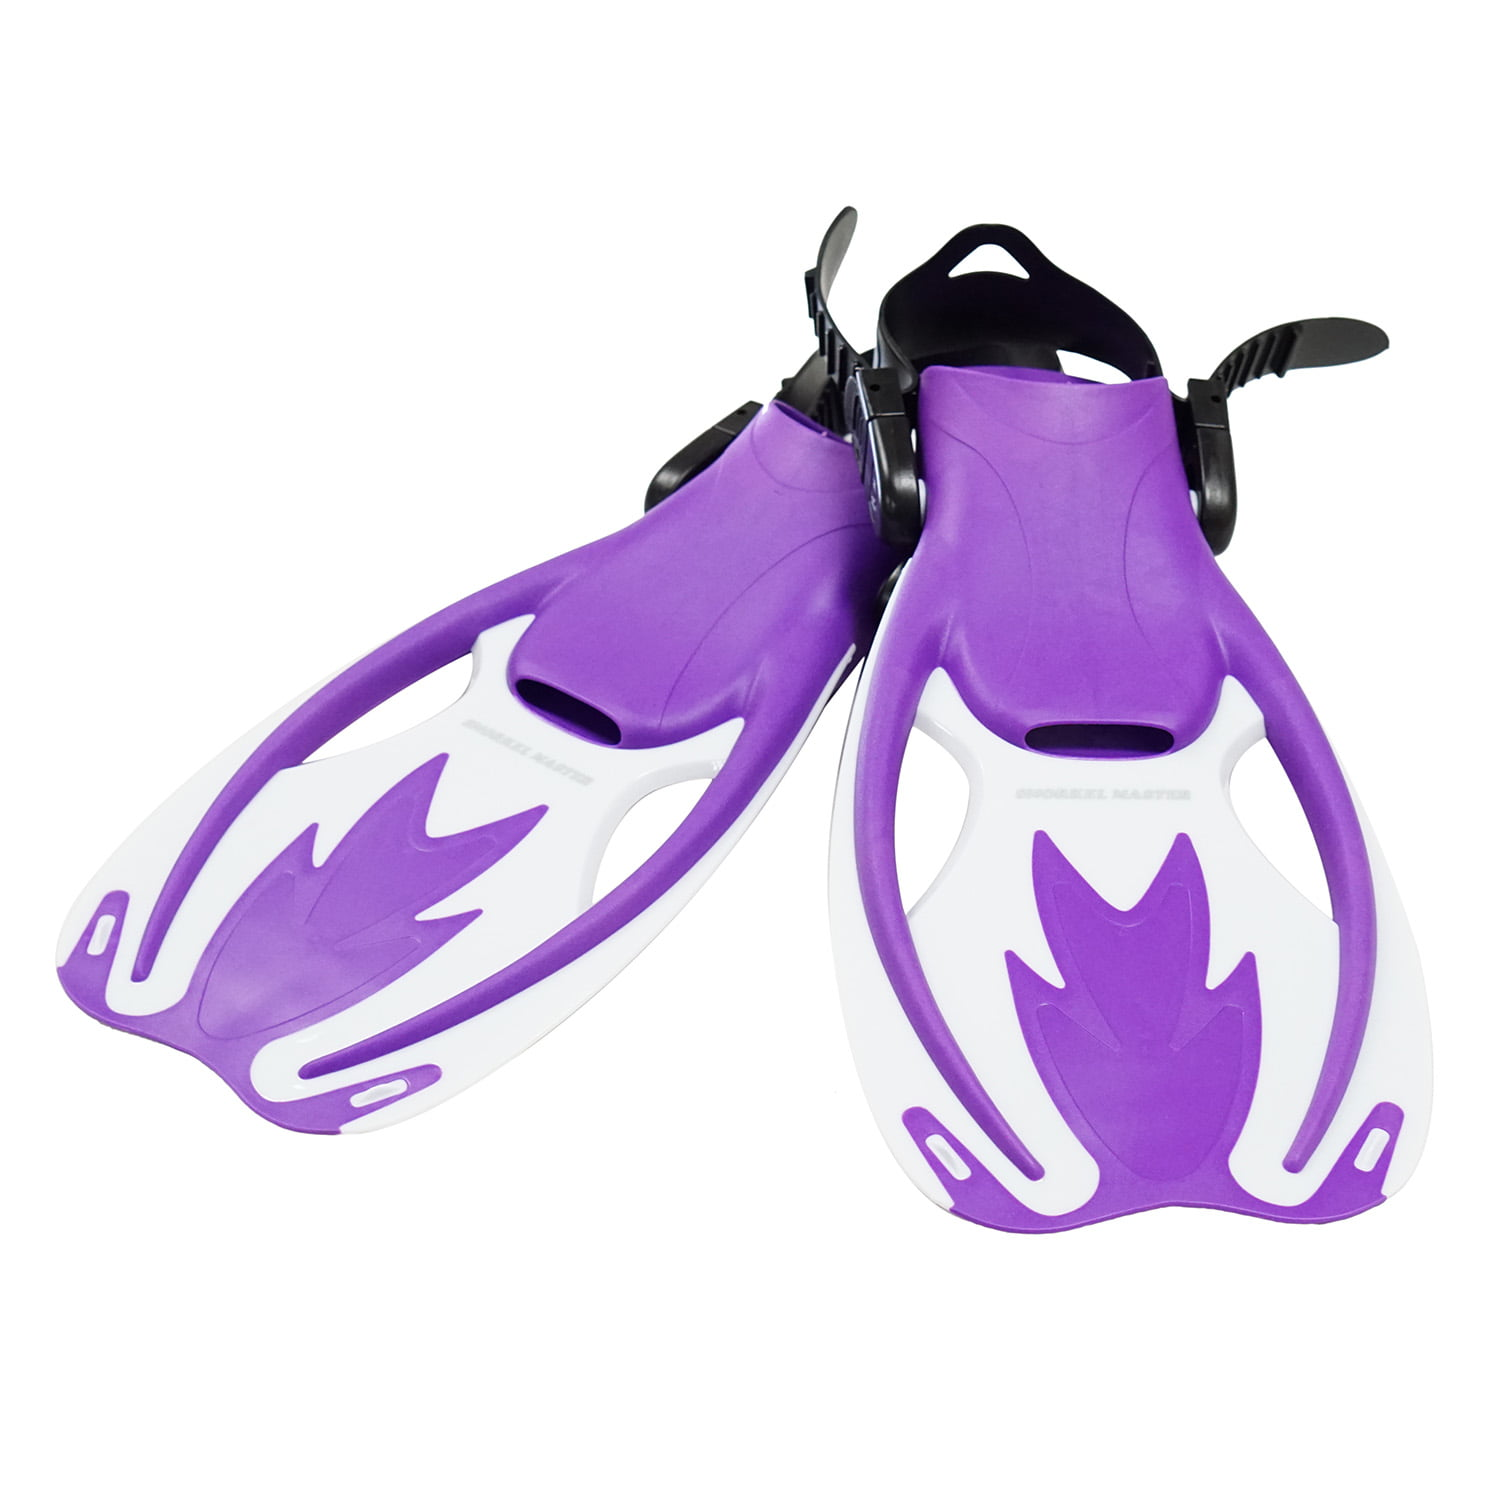 Snorkel Master Kids Purple White Swimming Snorkeling Fins, L XL by Scuba Choice